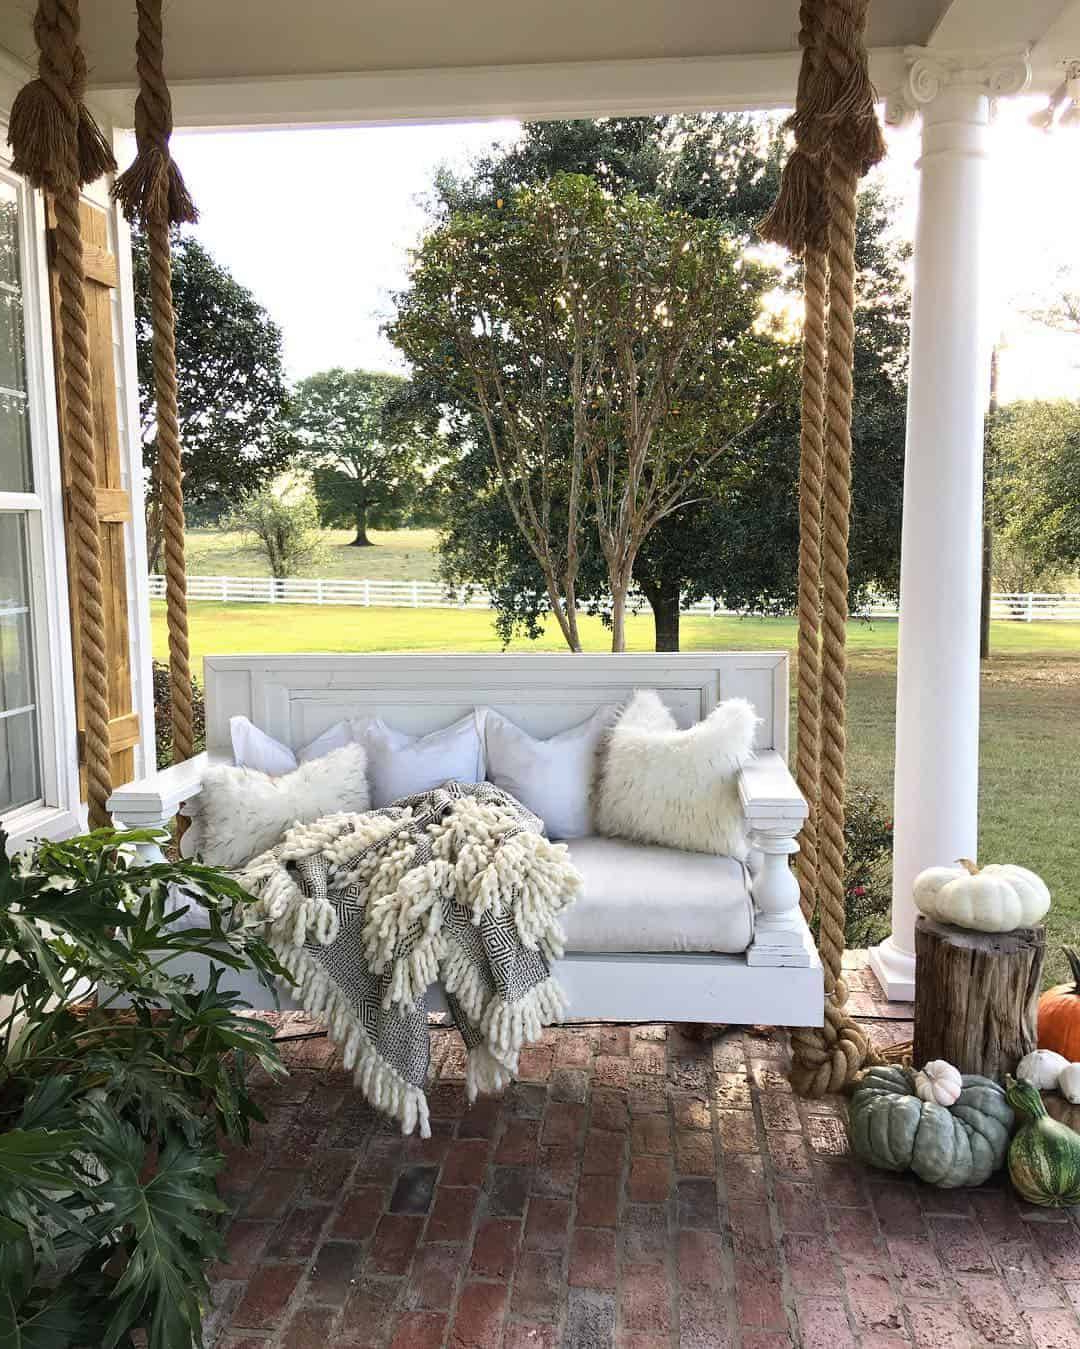 Preferred Patio Hanging Porch Swings Regarding Scenic Swinging Porch Bed Rustic Farmhouse Hanging Swing (View 9 of 25)